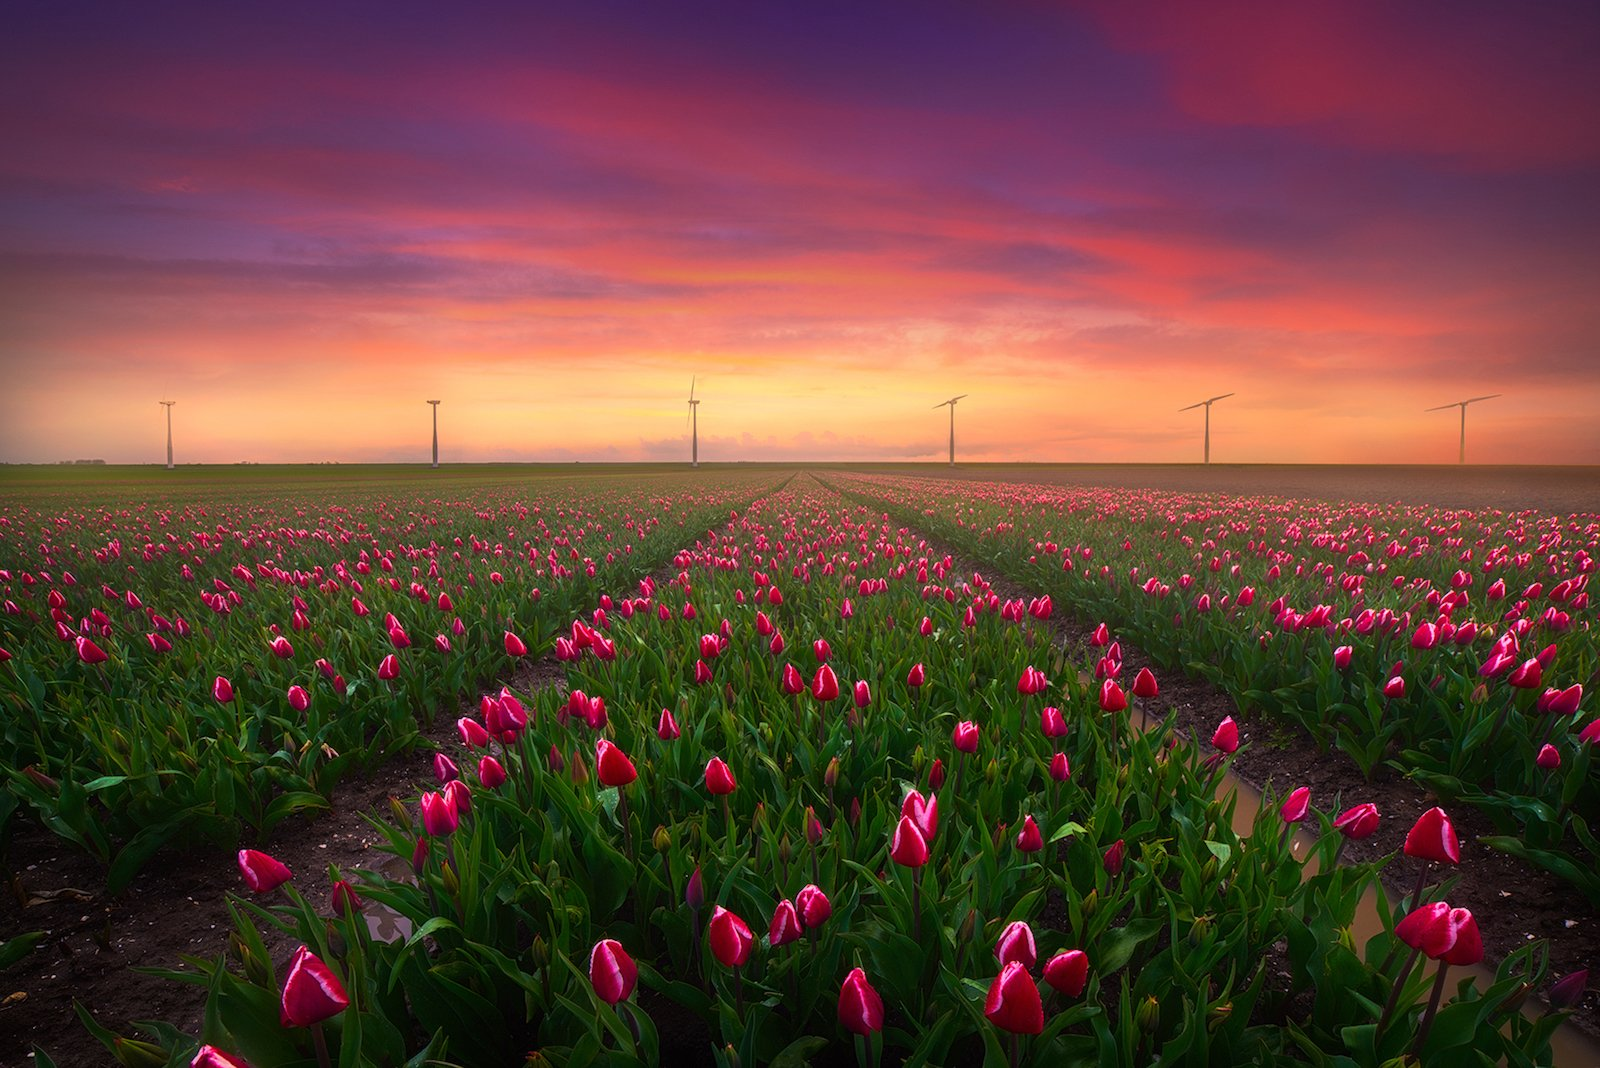 Where And How To Shoot Tulips In The Netherlands